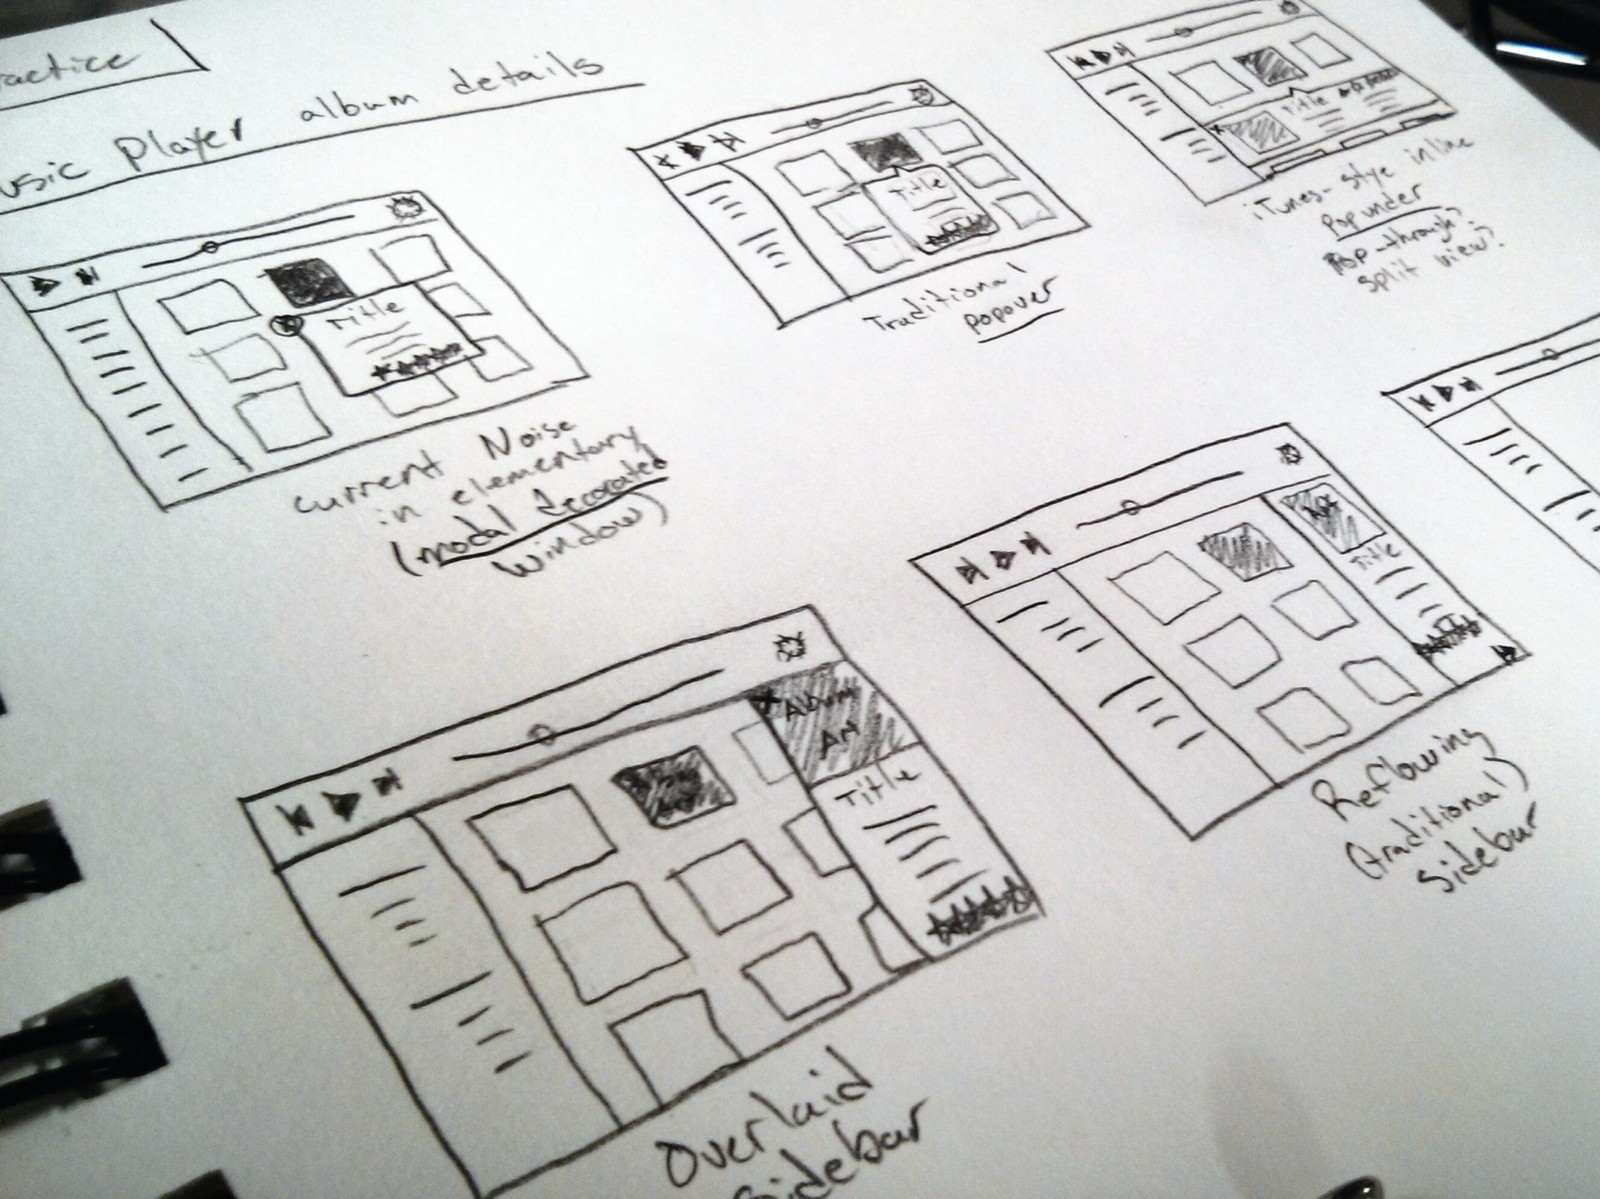 Sketches of potential Music layouts